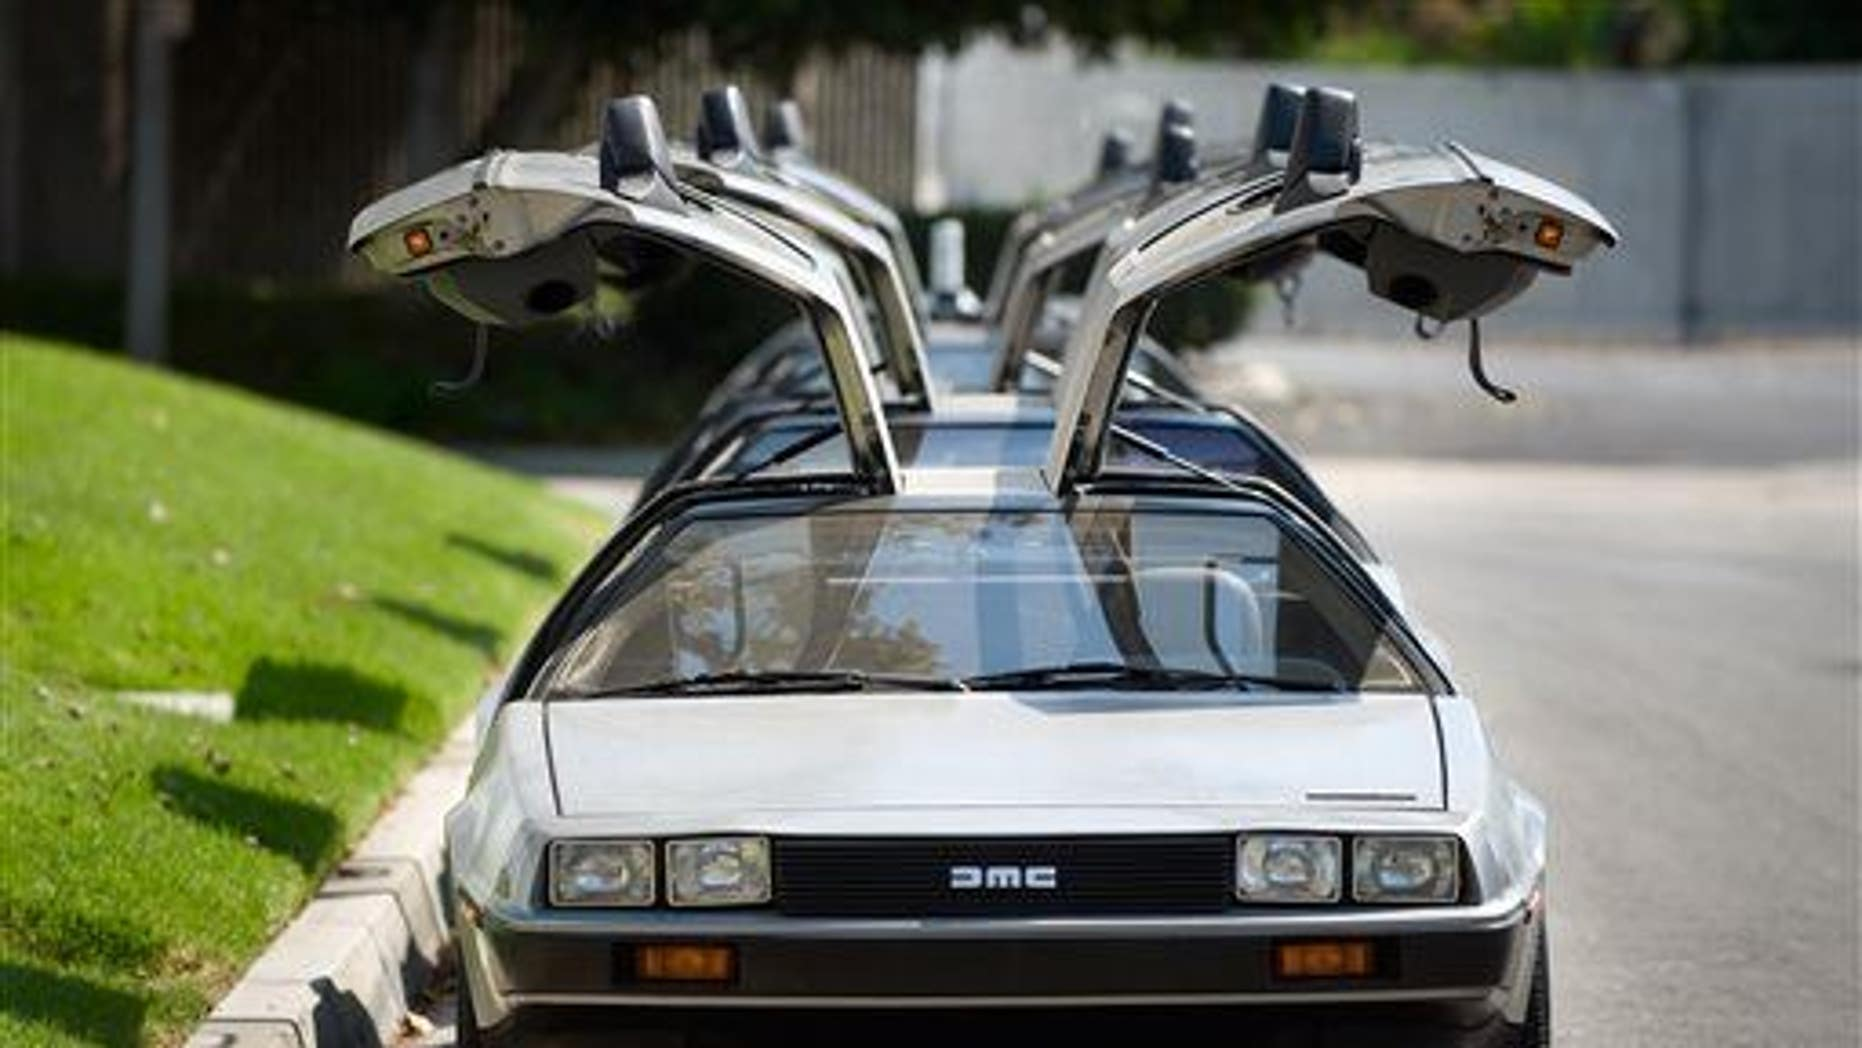 This photo shows DeLoreans parked outside The DeLorean Motor Company in Huntington Beach, Calif.